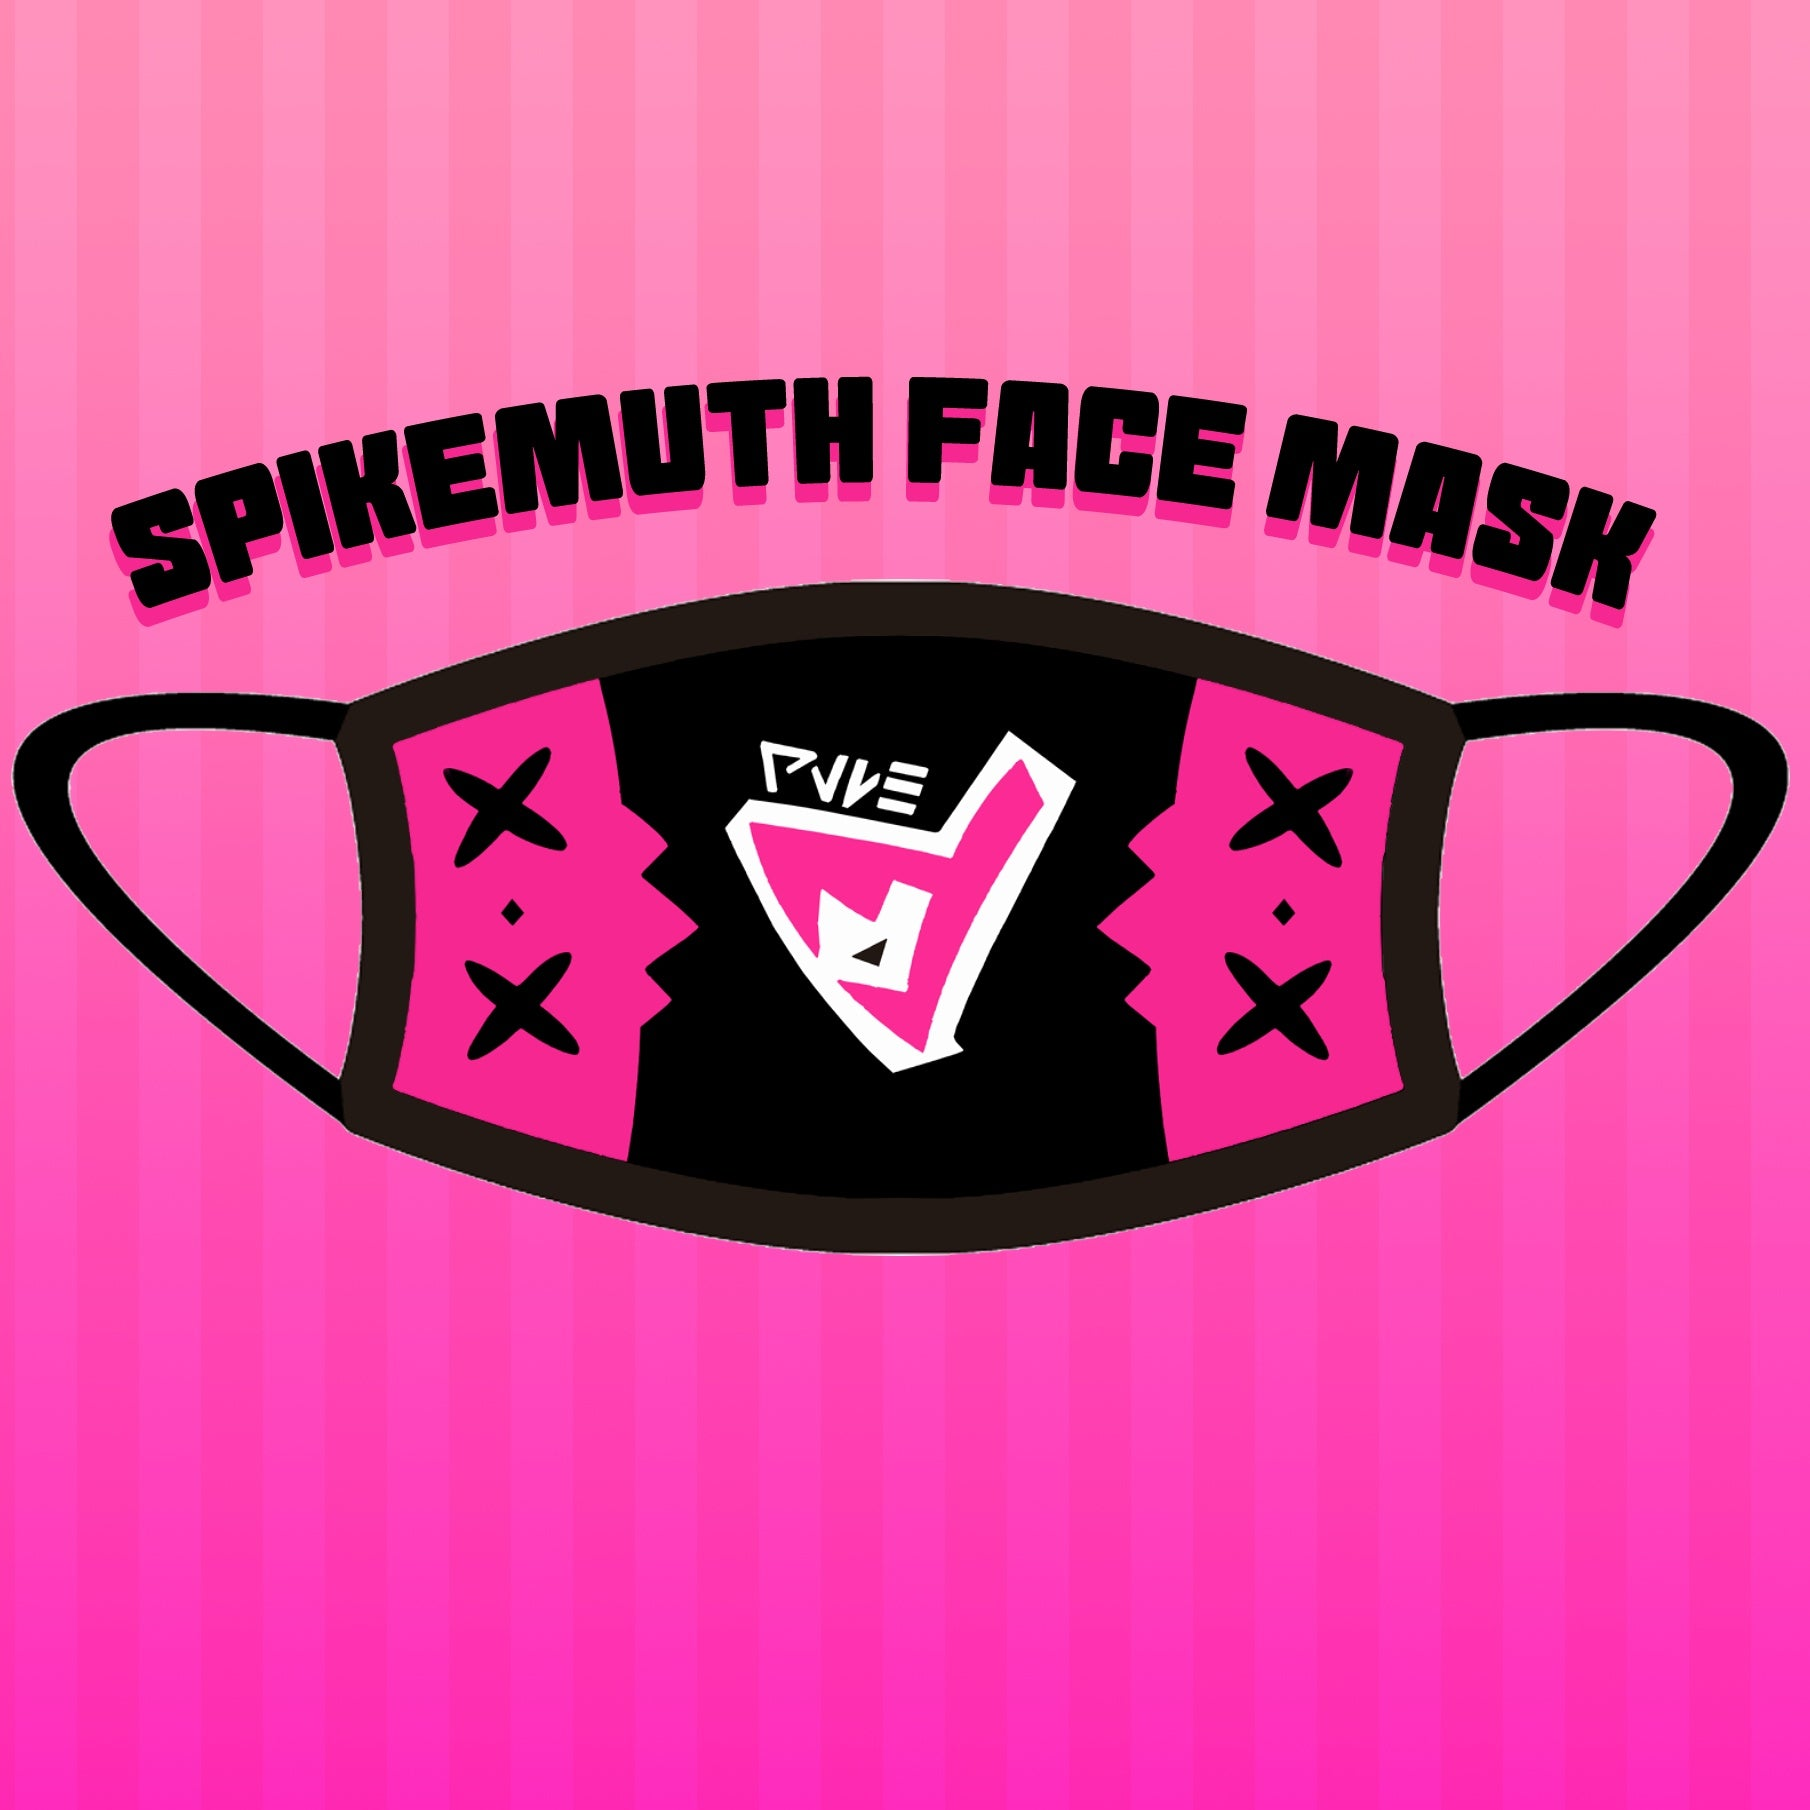 Spikemuth Face Mask